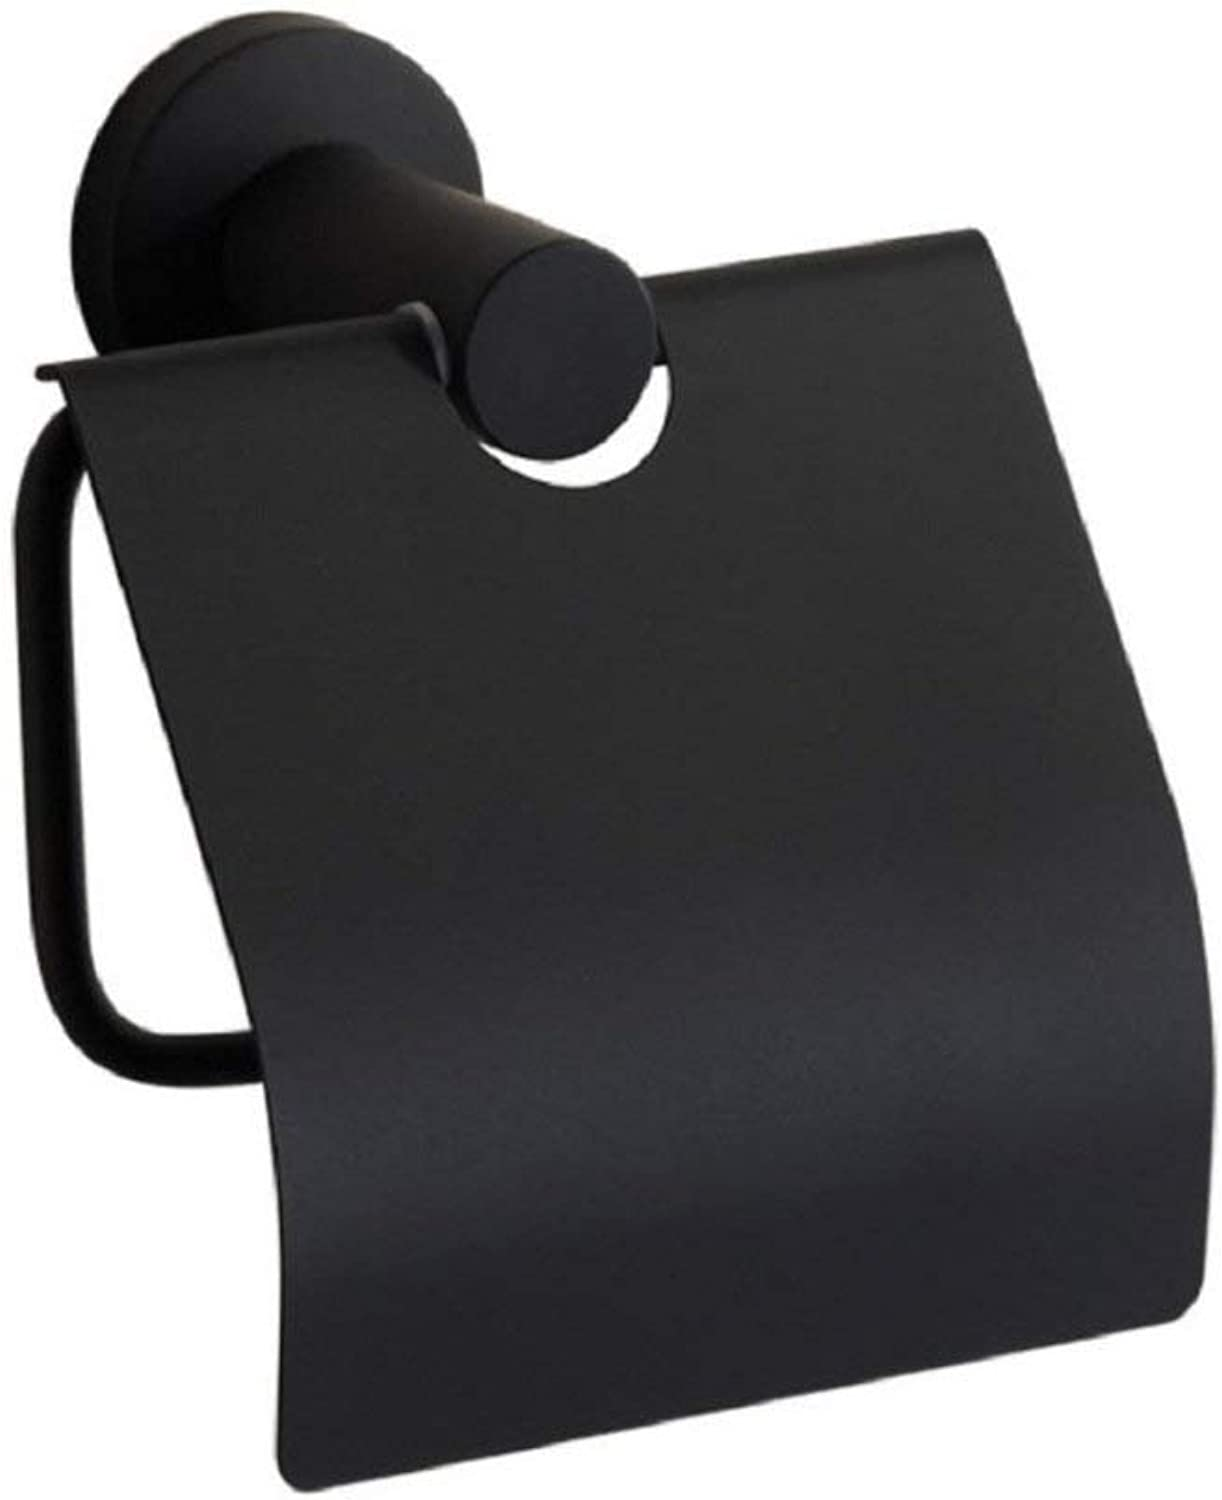 6d3f7bed9ce0 Door-Paper Black Gate-Roll Paper Towels Stainless Steel Paper Holder ...